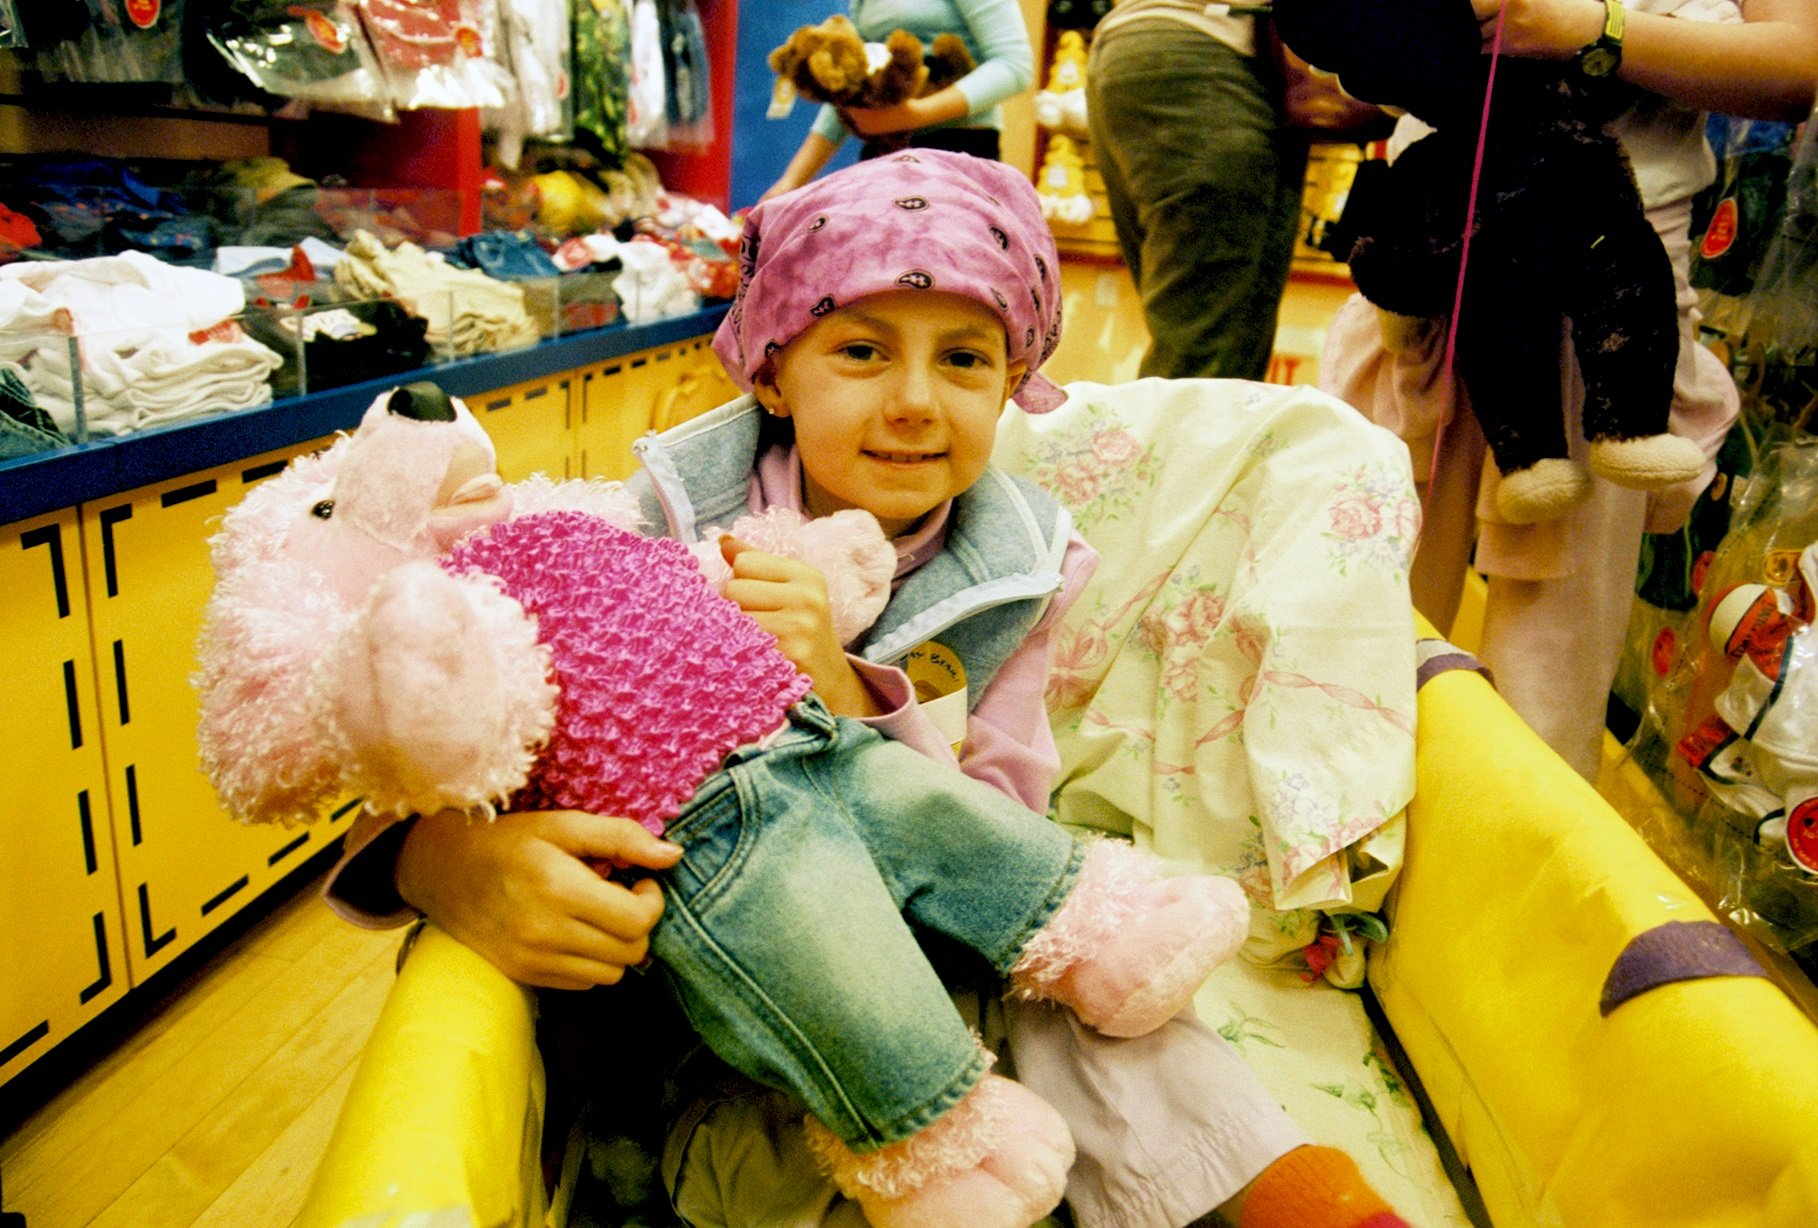 Alex at Build a Bear